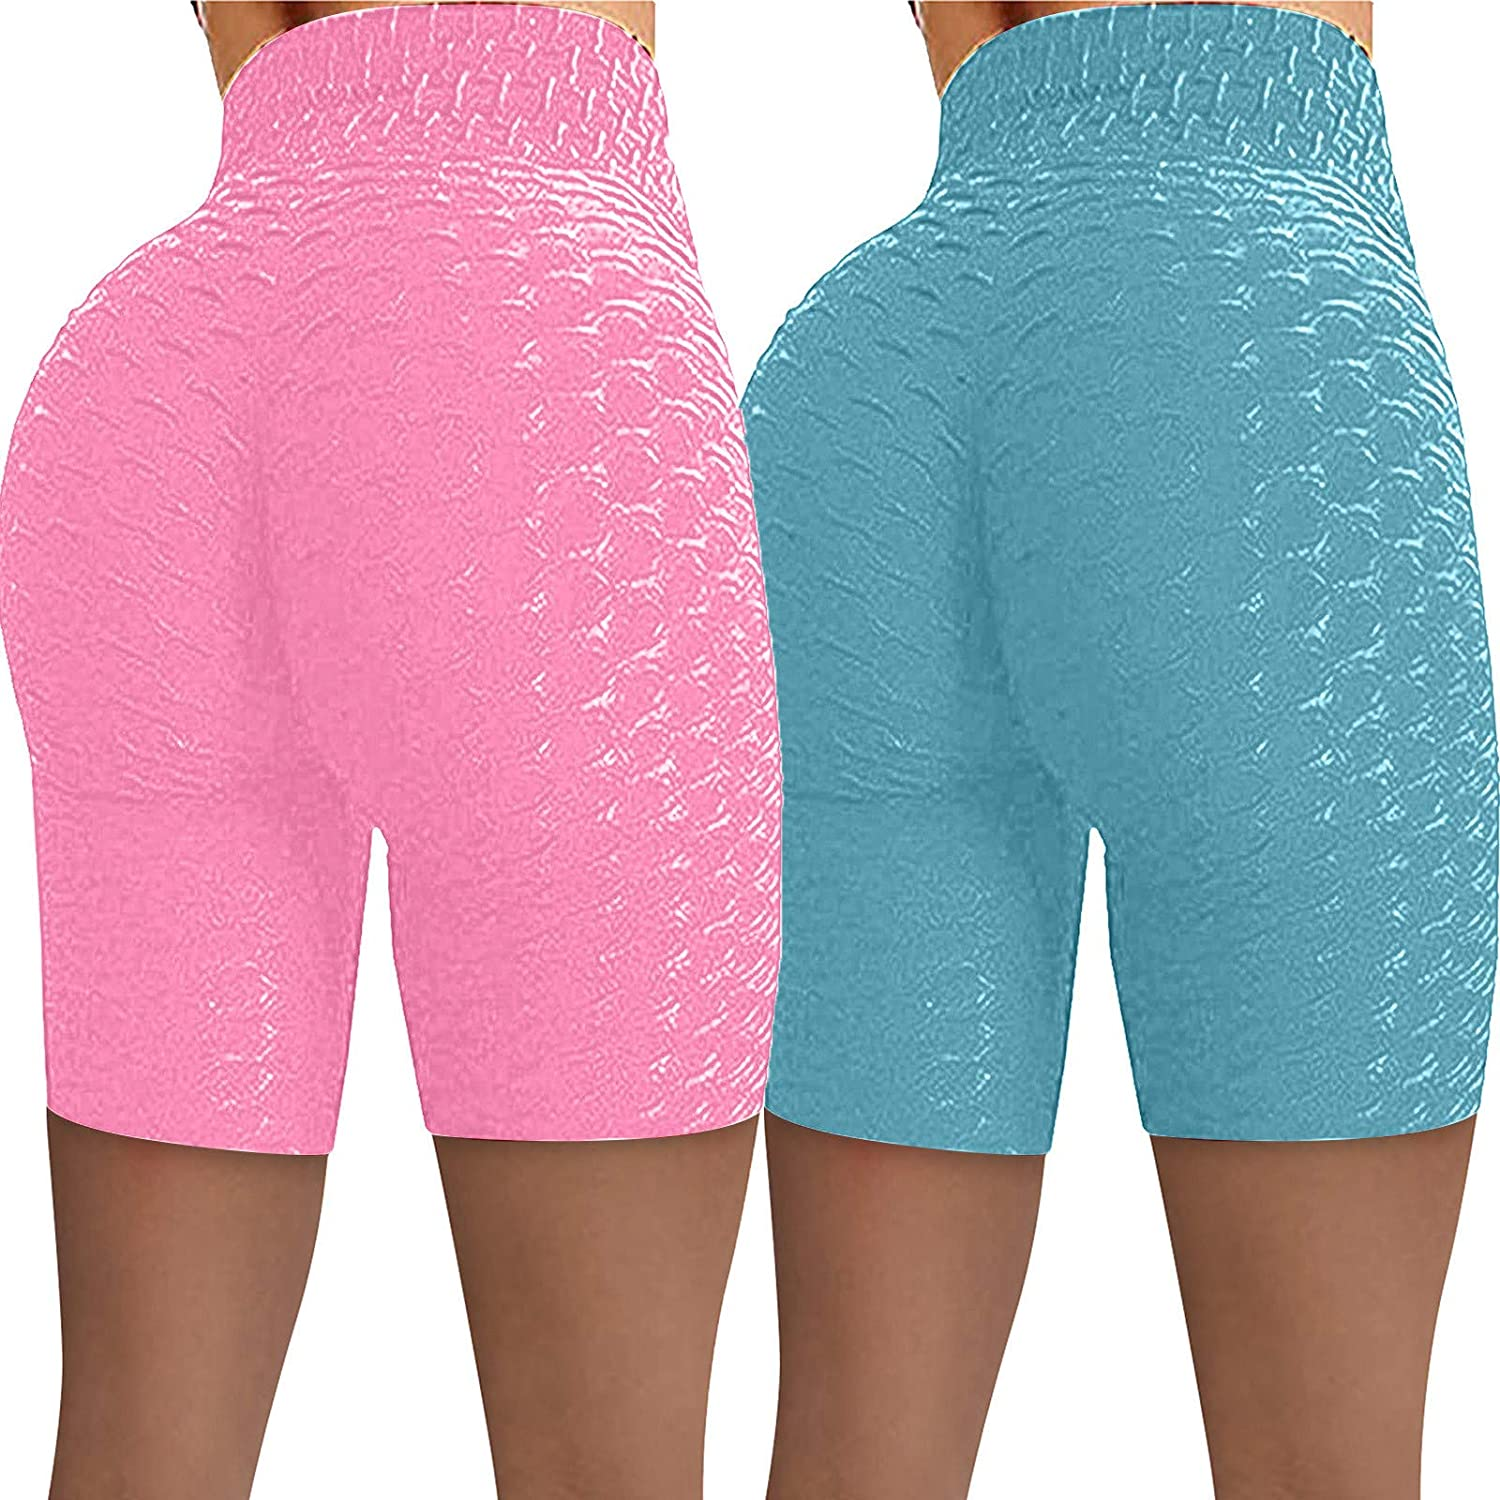 2 Pack Running Shorts for Women,Women's High Waisted Yoga Shorts Sports Gym Ruched Butt Lifting Workout Hot Leggings